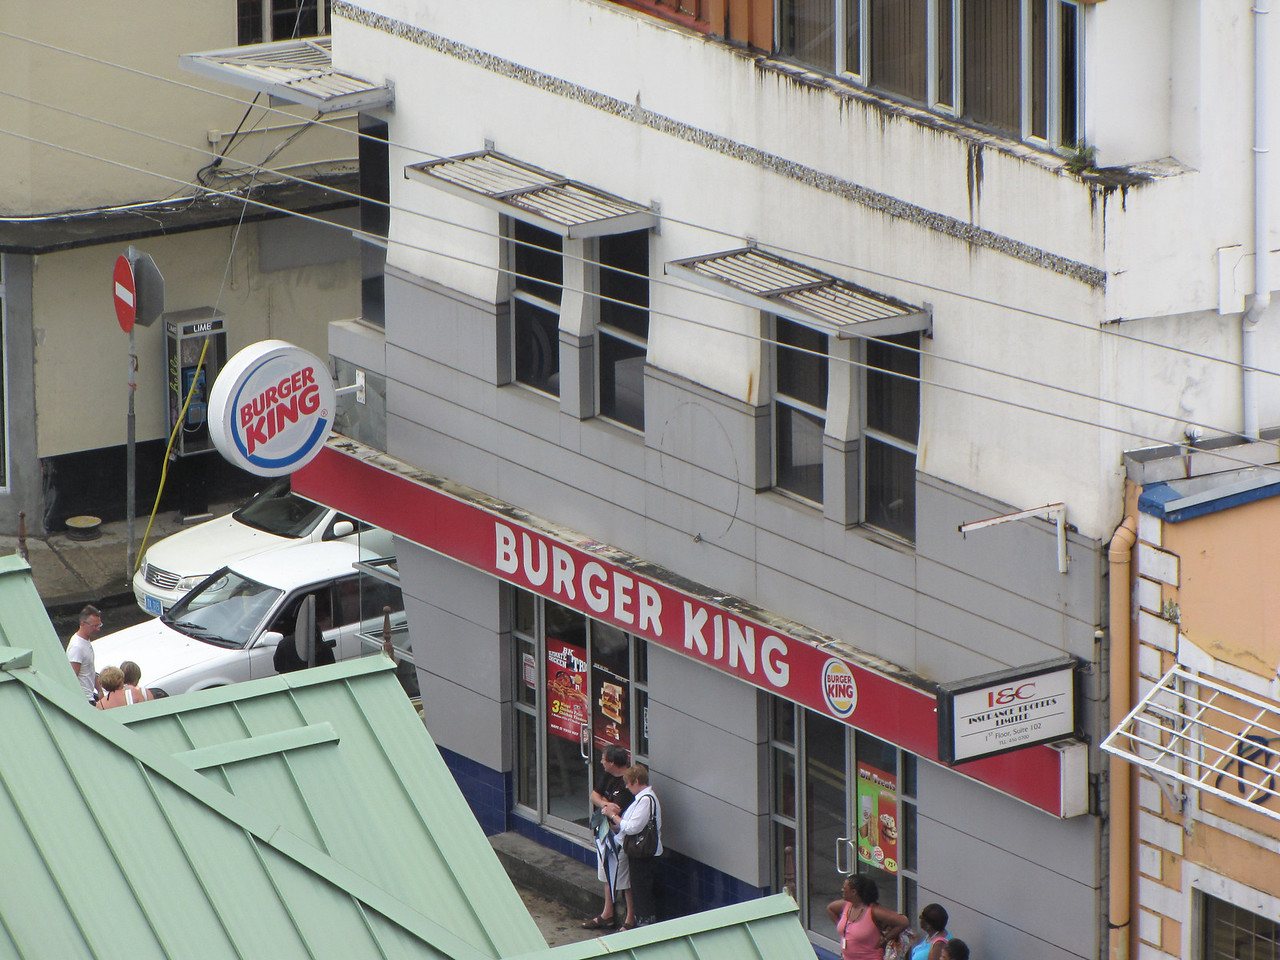 There was a Burger King not far from where we were docked.